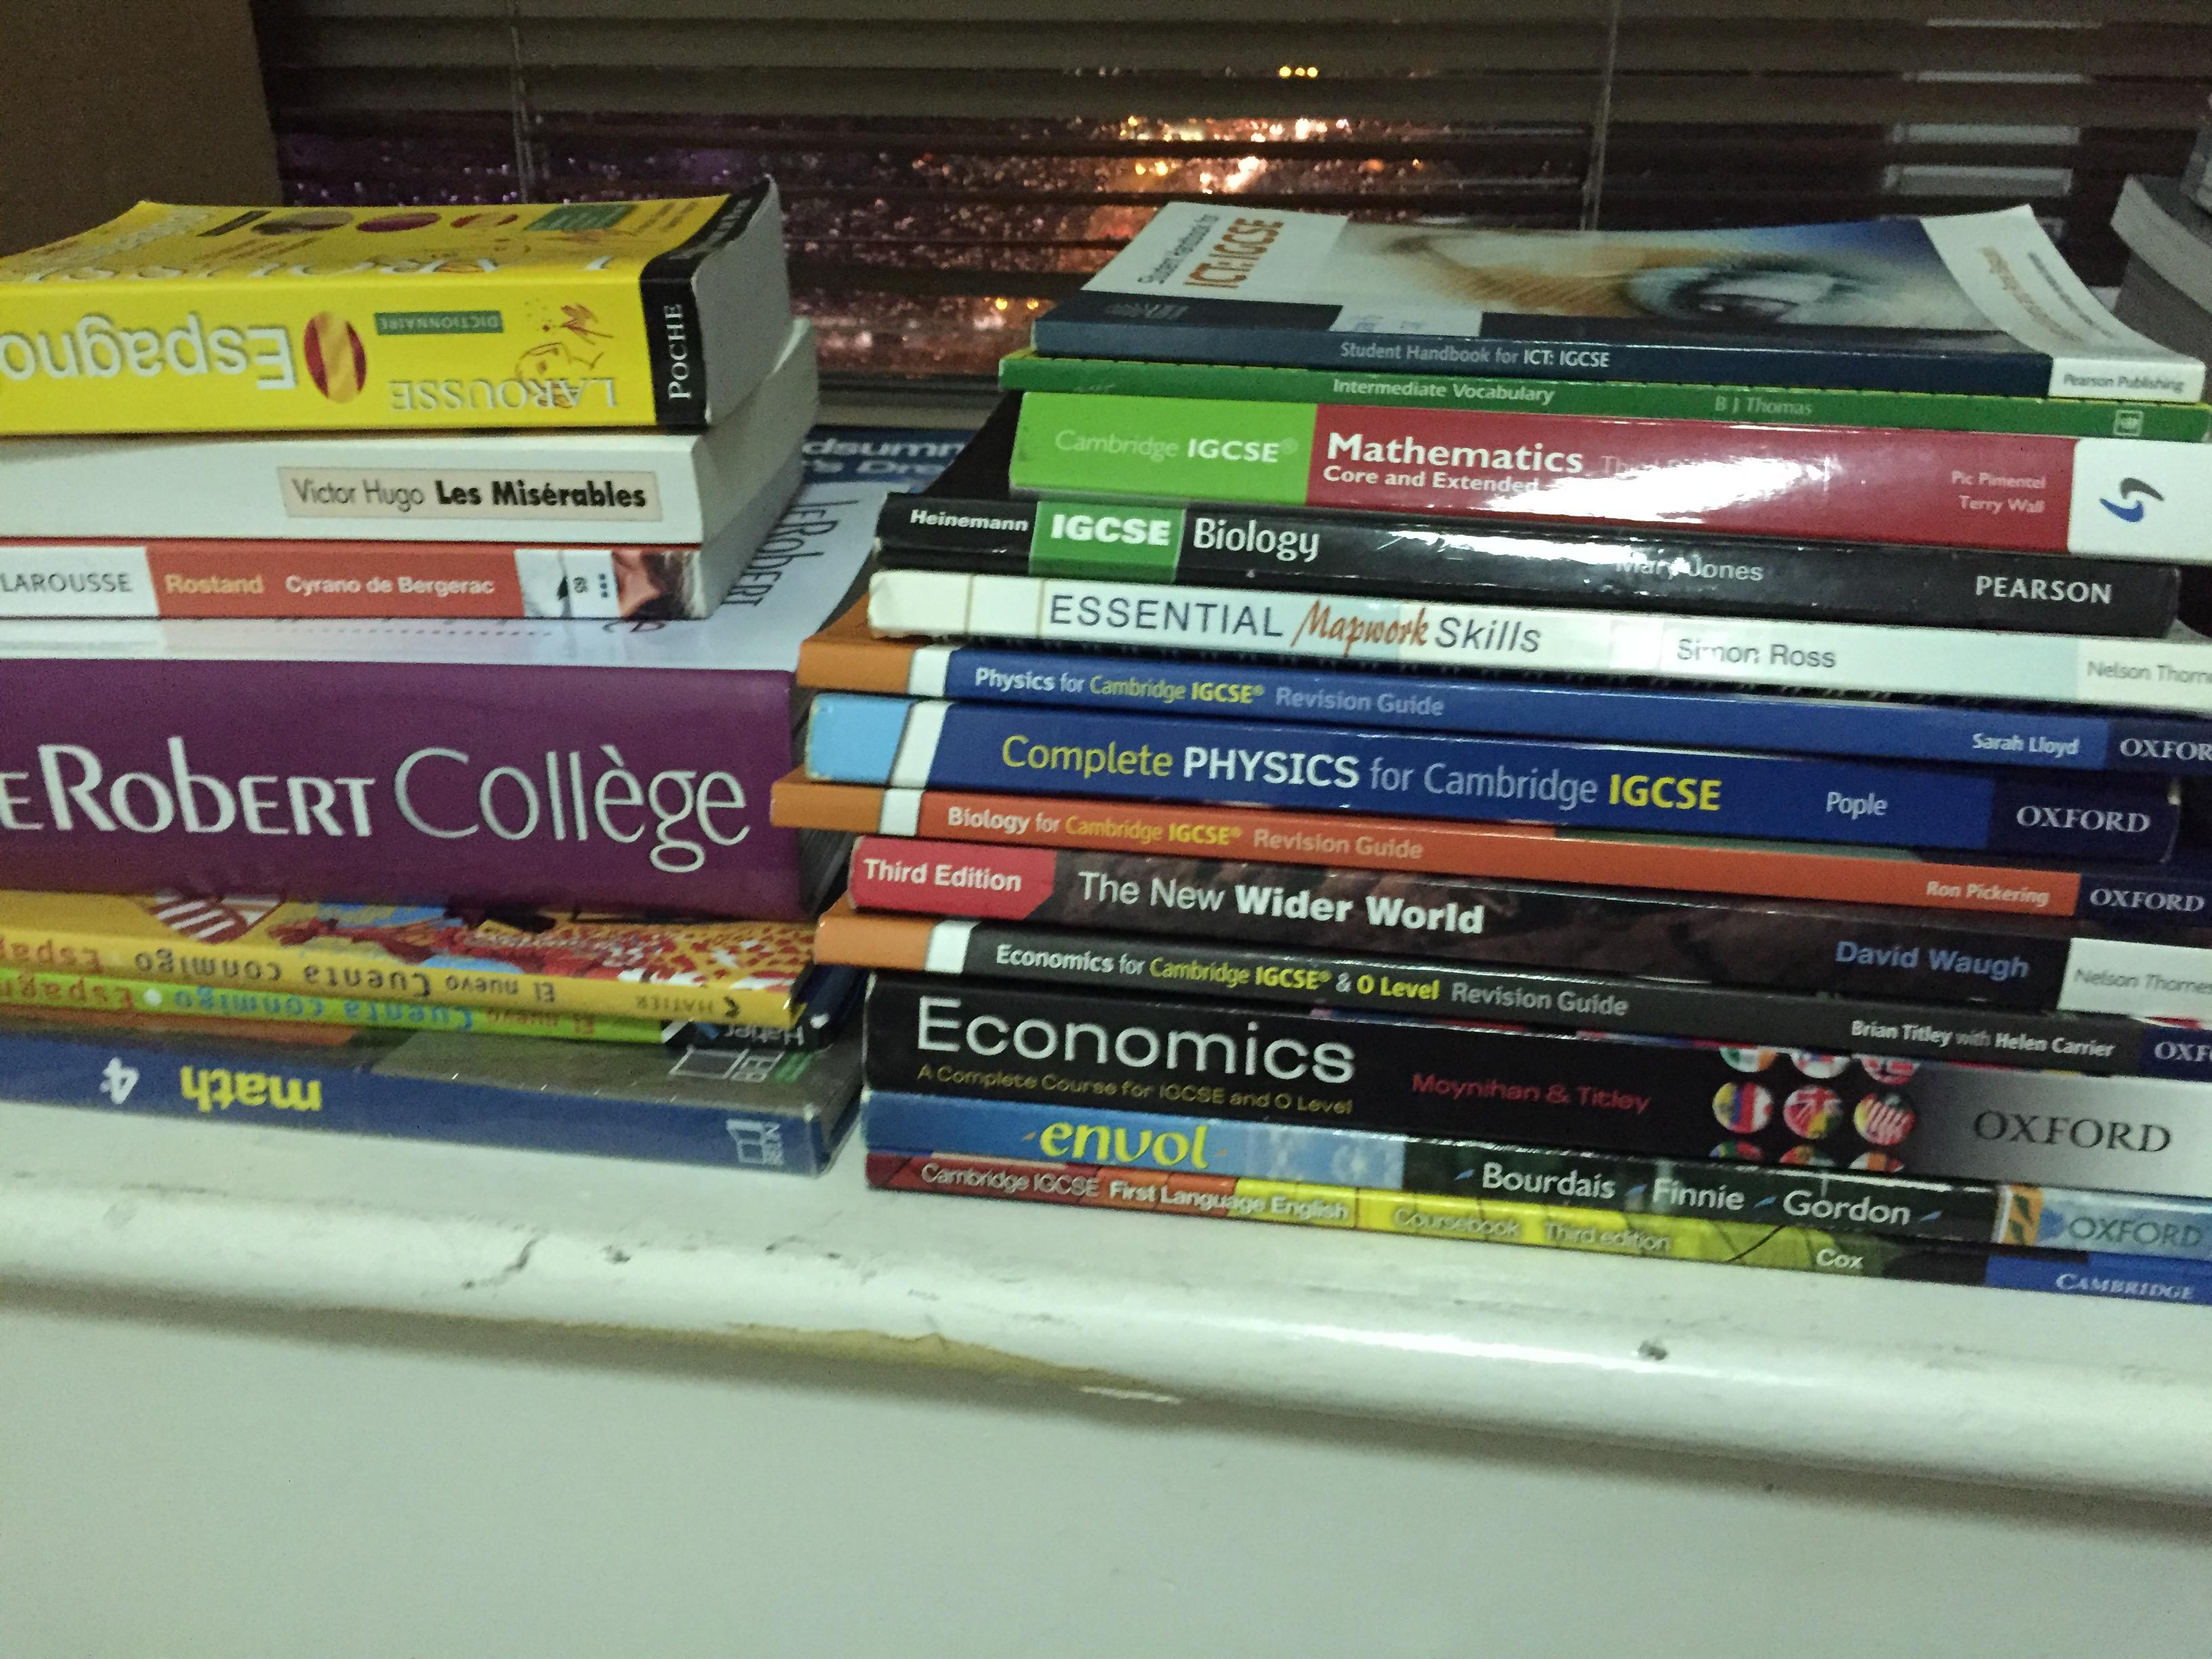 IB and IGCSE textbooks, novels, and books in french